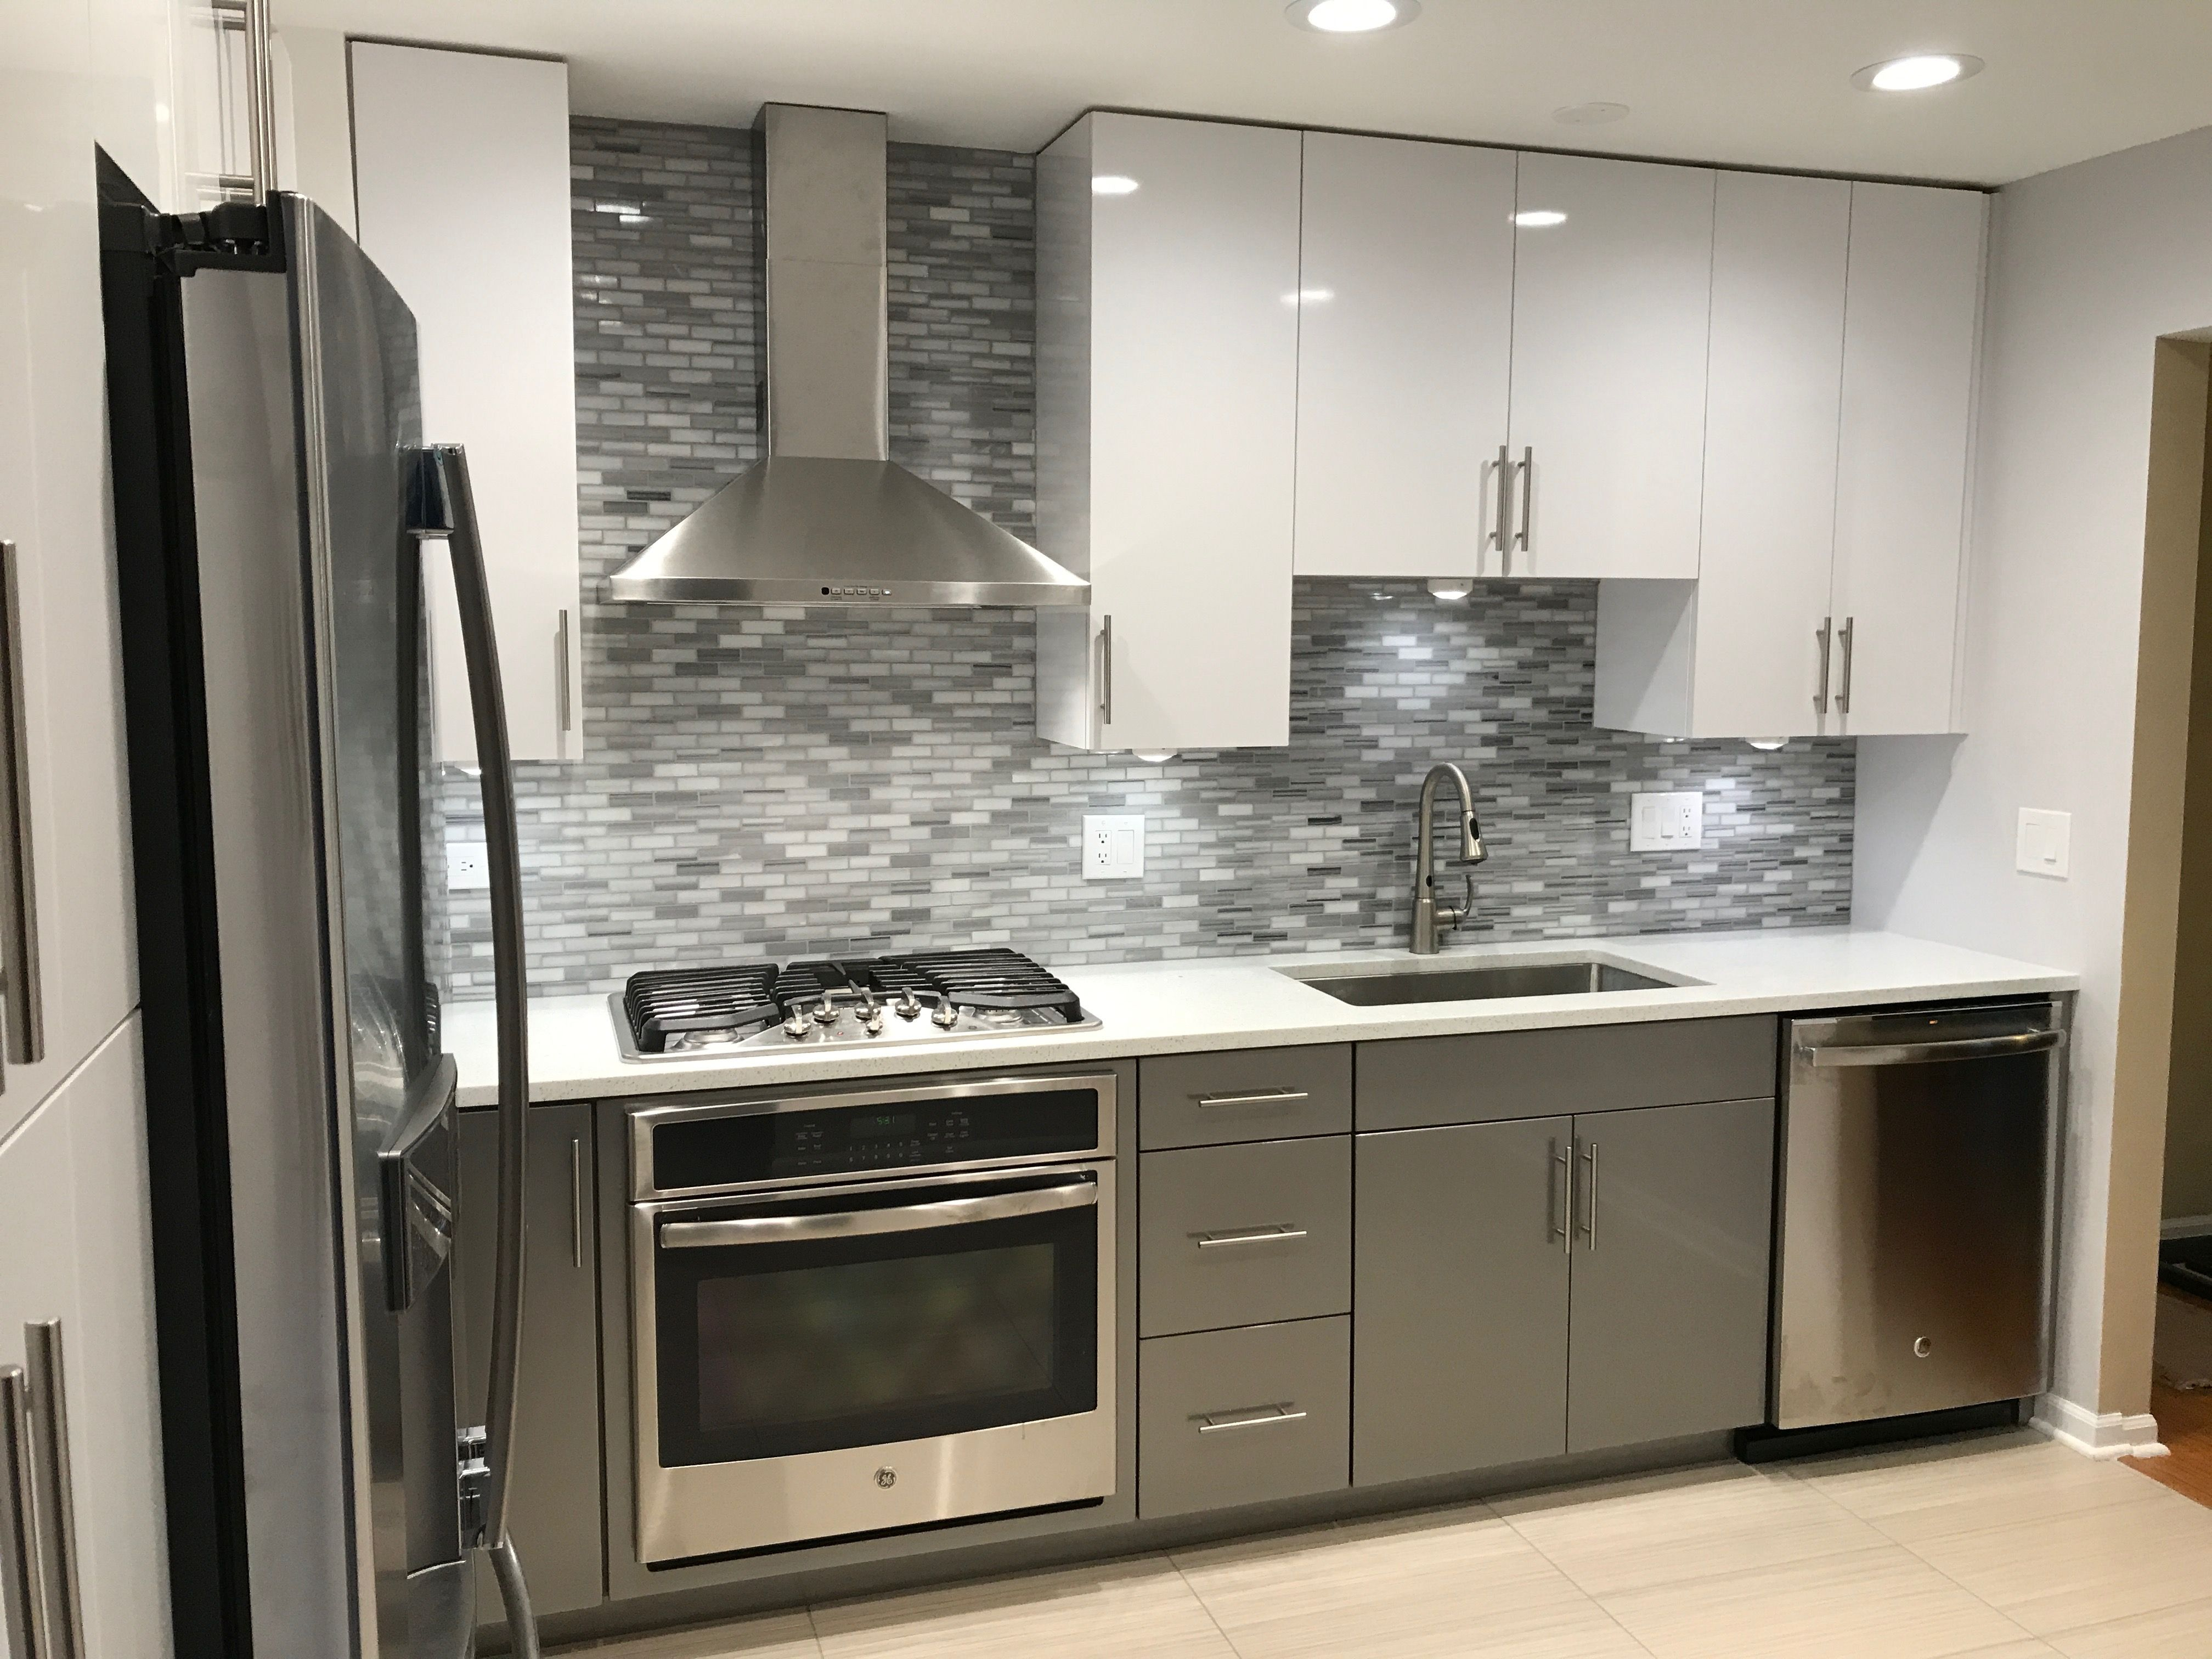 Stainless Steel appliances and different color scheme ...